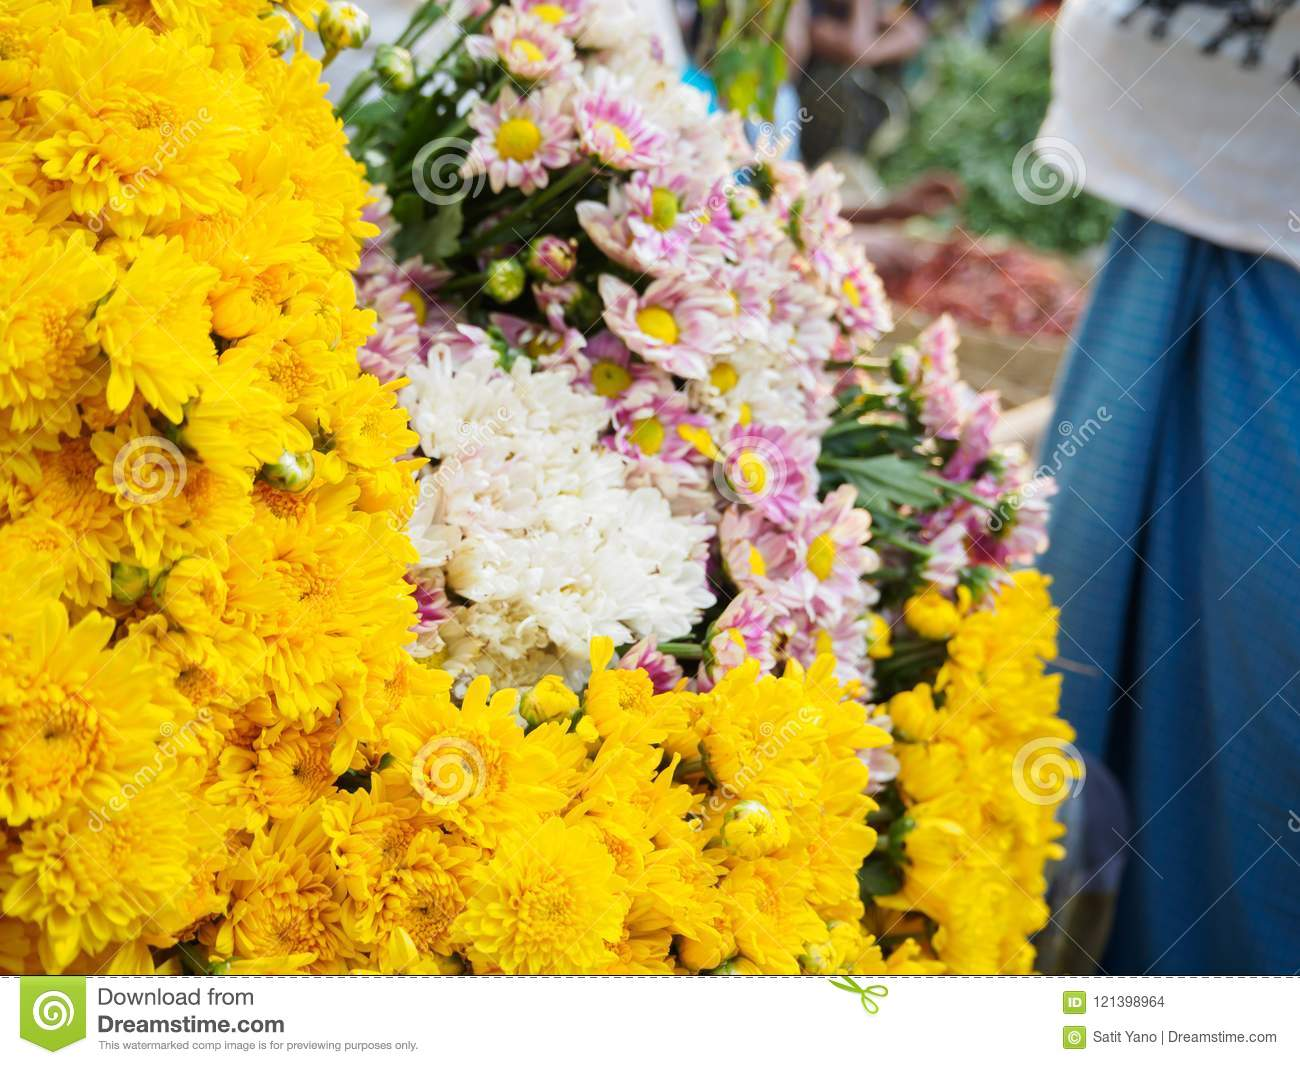 Yellow chrysanthemum flowers bloom in bagan market stock photo download yellow chrysanthemum flowers bloom in bagan market stock photo image of color mightylinksfo